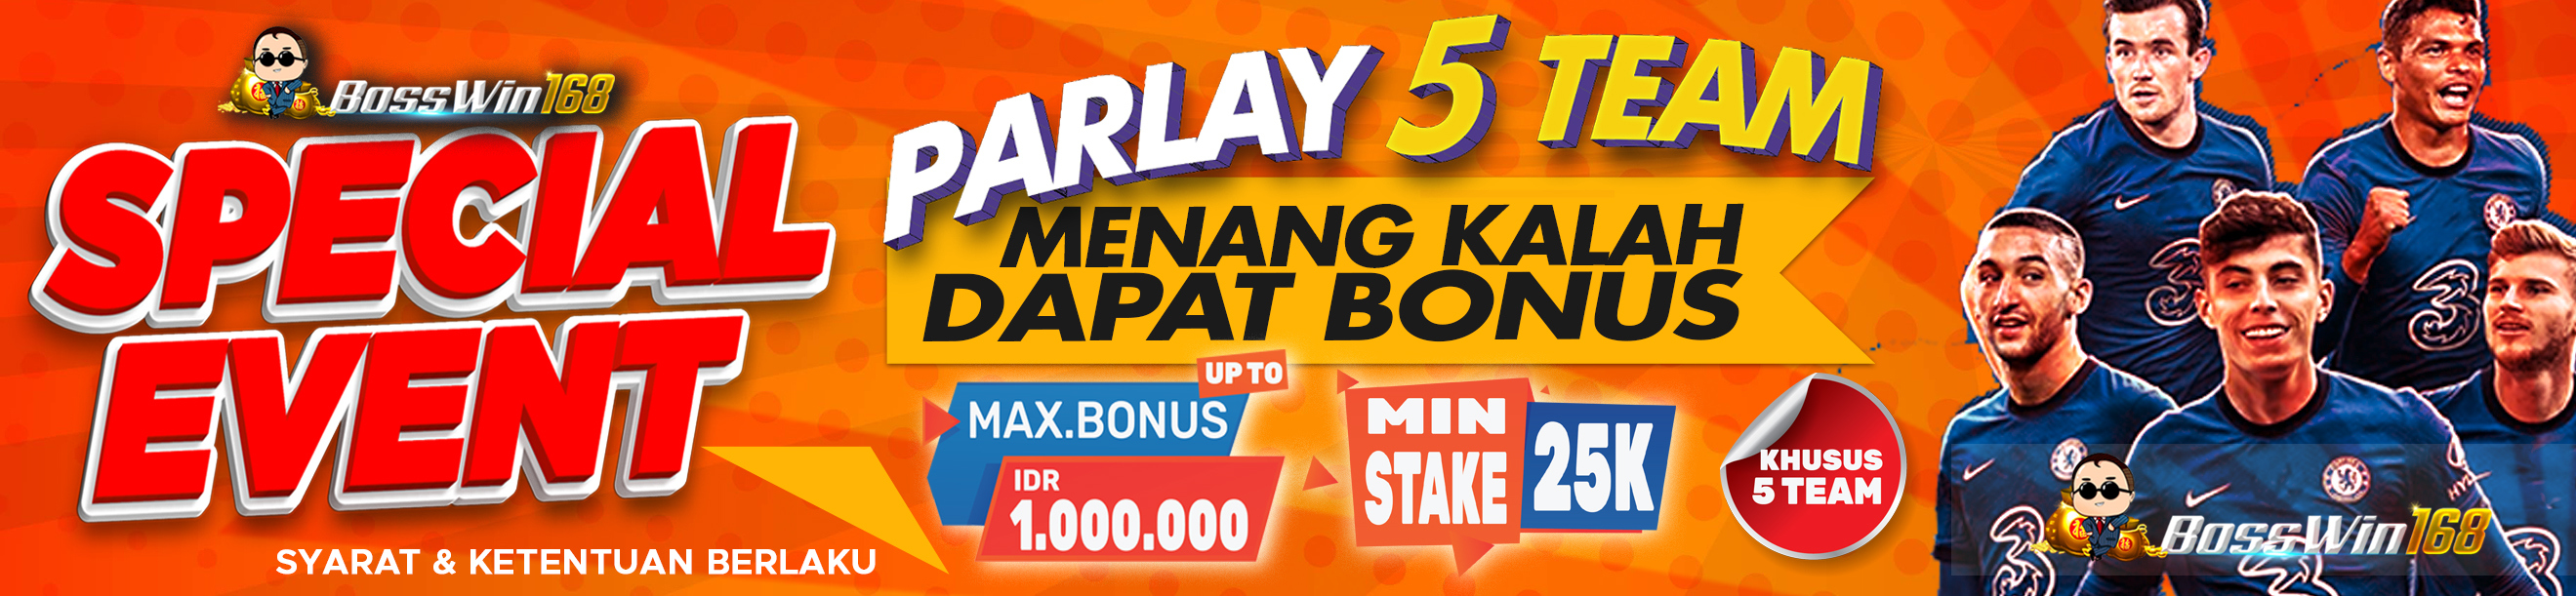 SPECIAL EVENT PARLAY